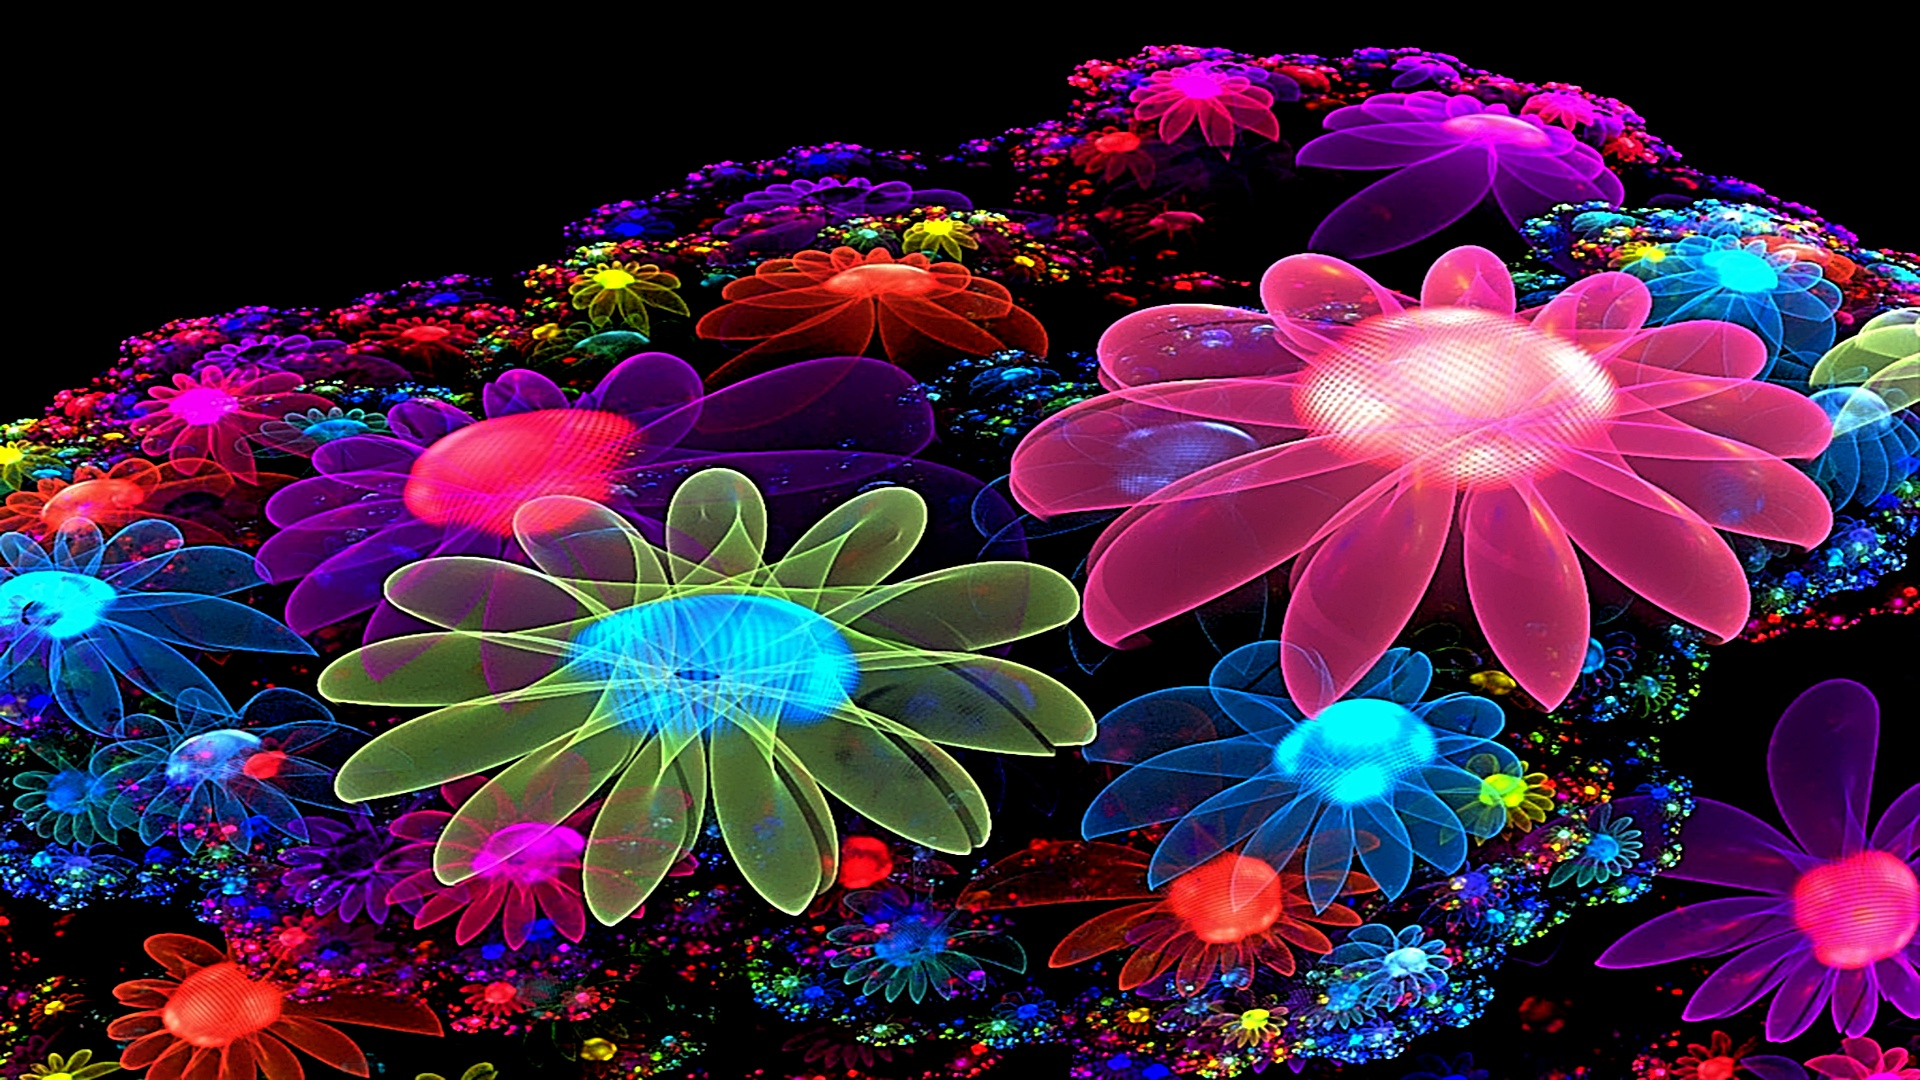 HD 3D Wallpapers Cool Colorful Flowers Desktop Wallpapers 1920x1080